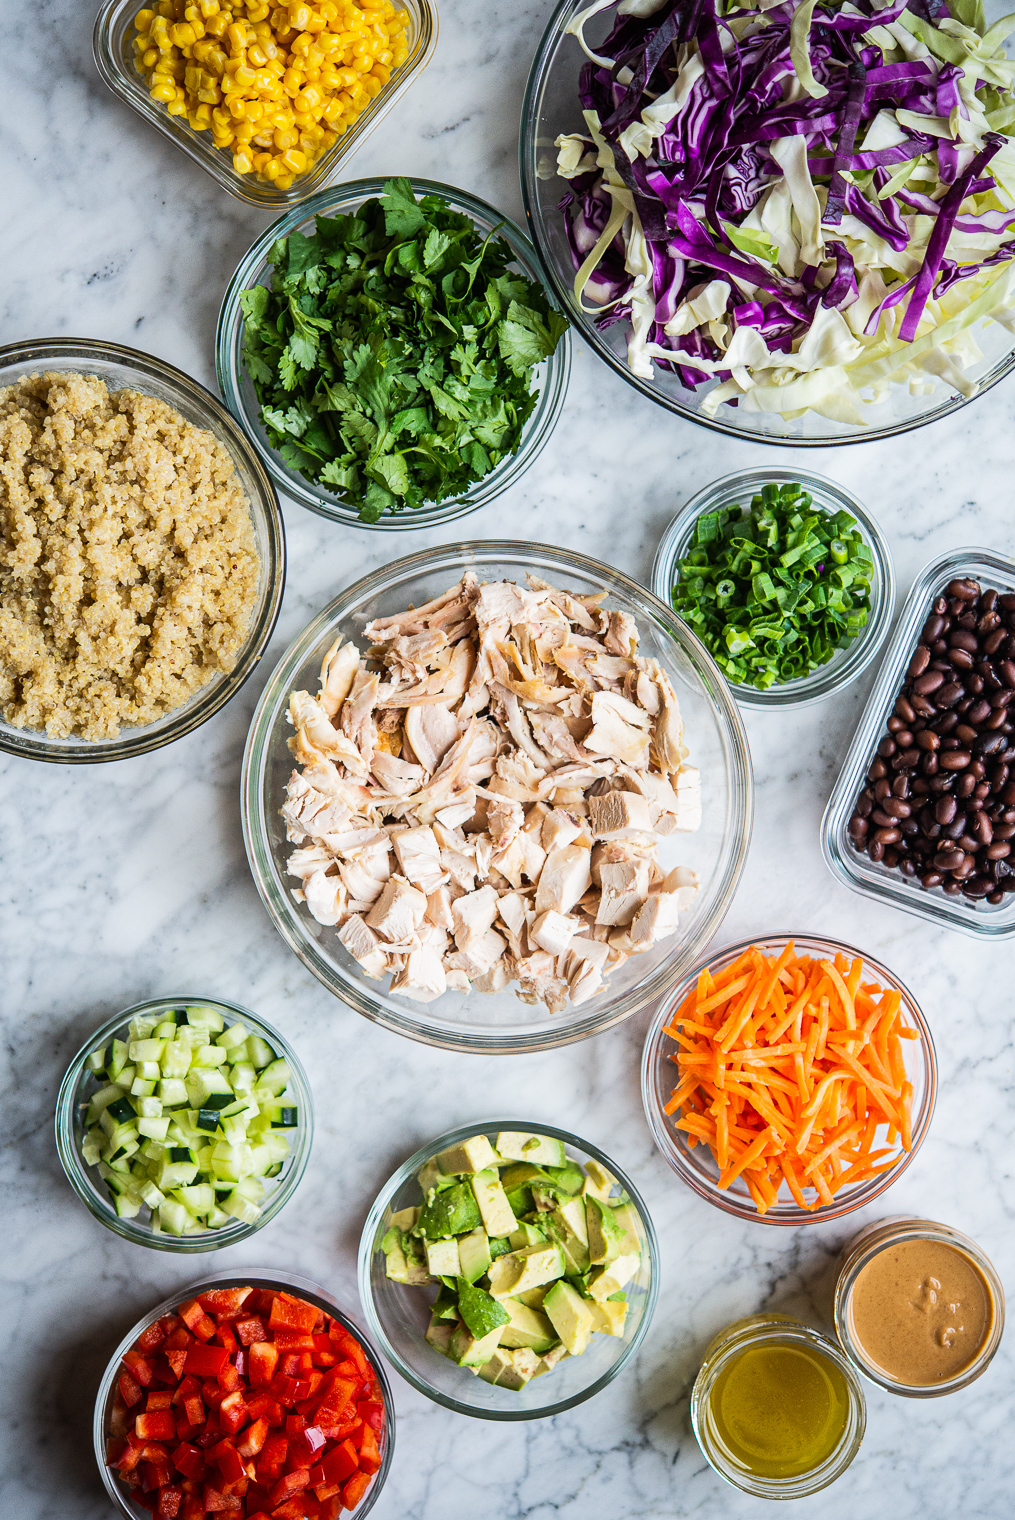 meal prep ingredients for thai chicken salad and southwestern quinoa salad in separate clear containers on a marble surface